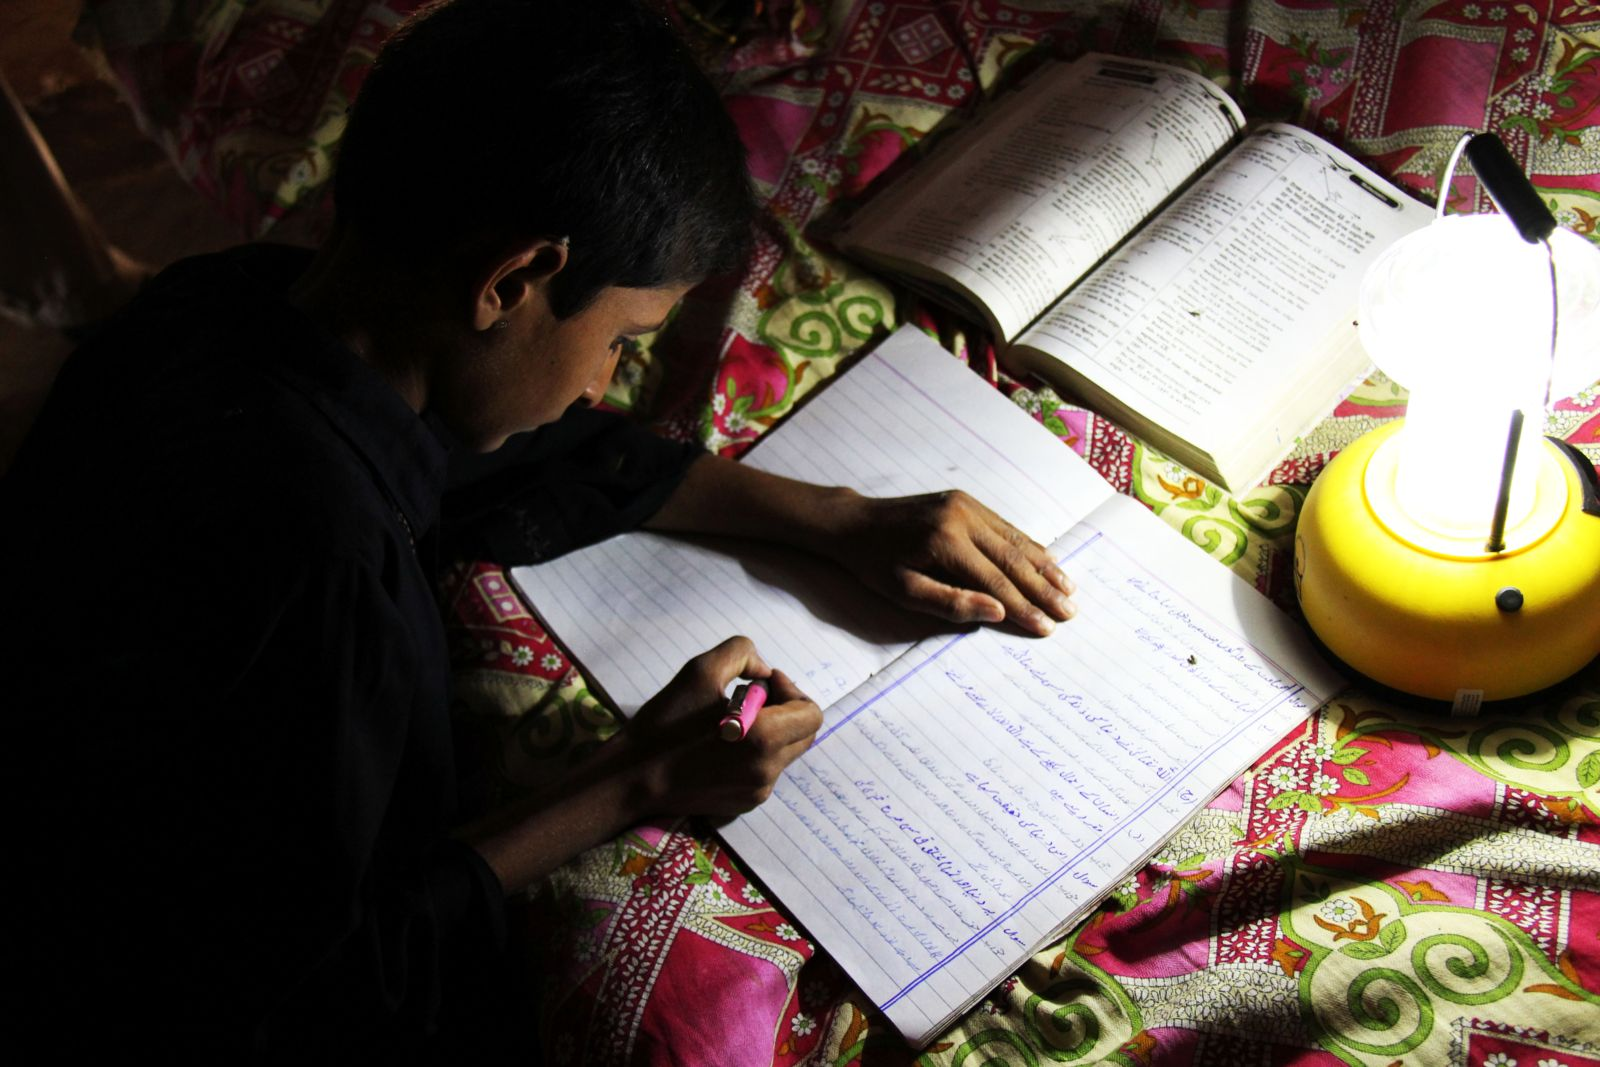 Pakistan child does his homework via a solar lamp